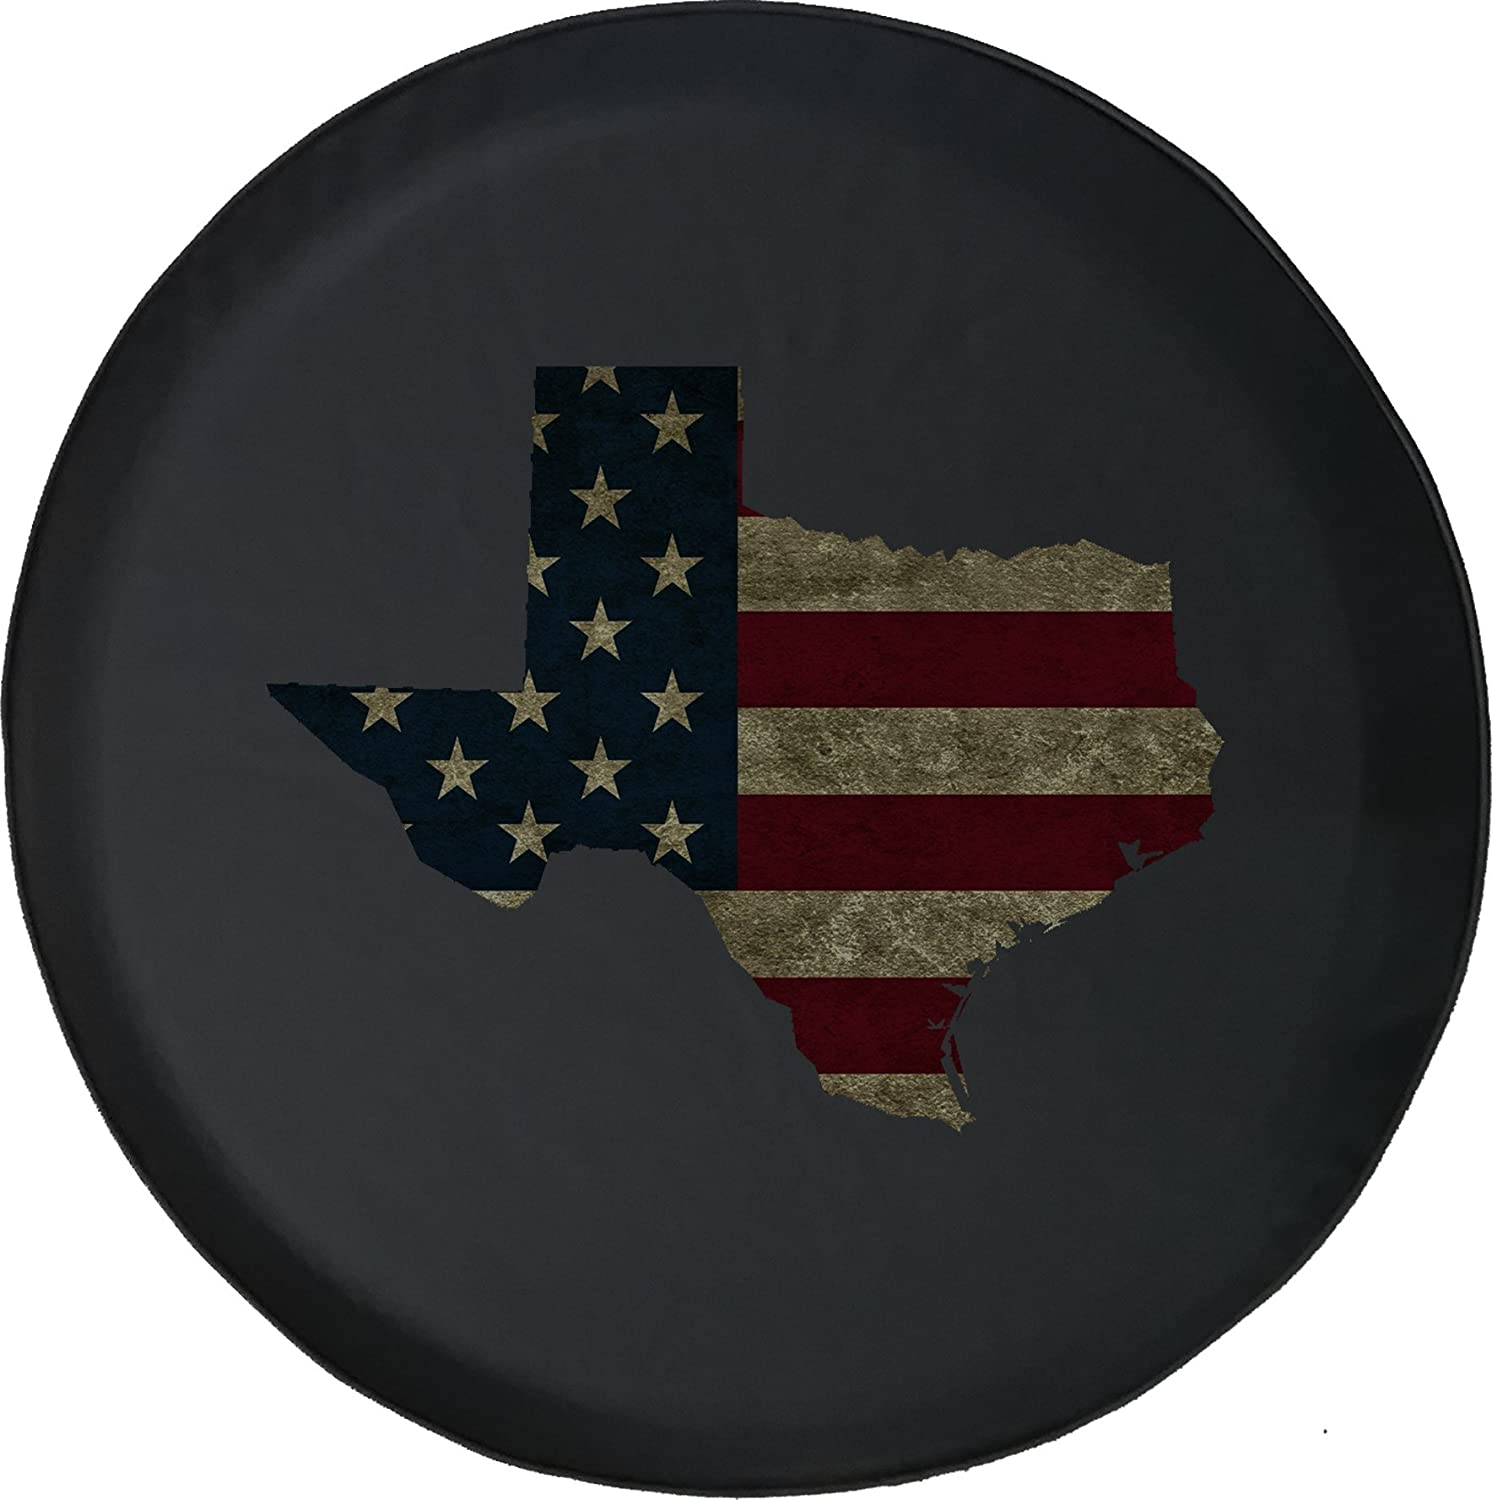 556 Gear Texas Distressed American Flag Jeep RV Spare Tire Cover Black 32 in